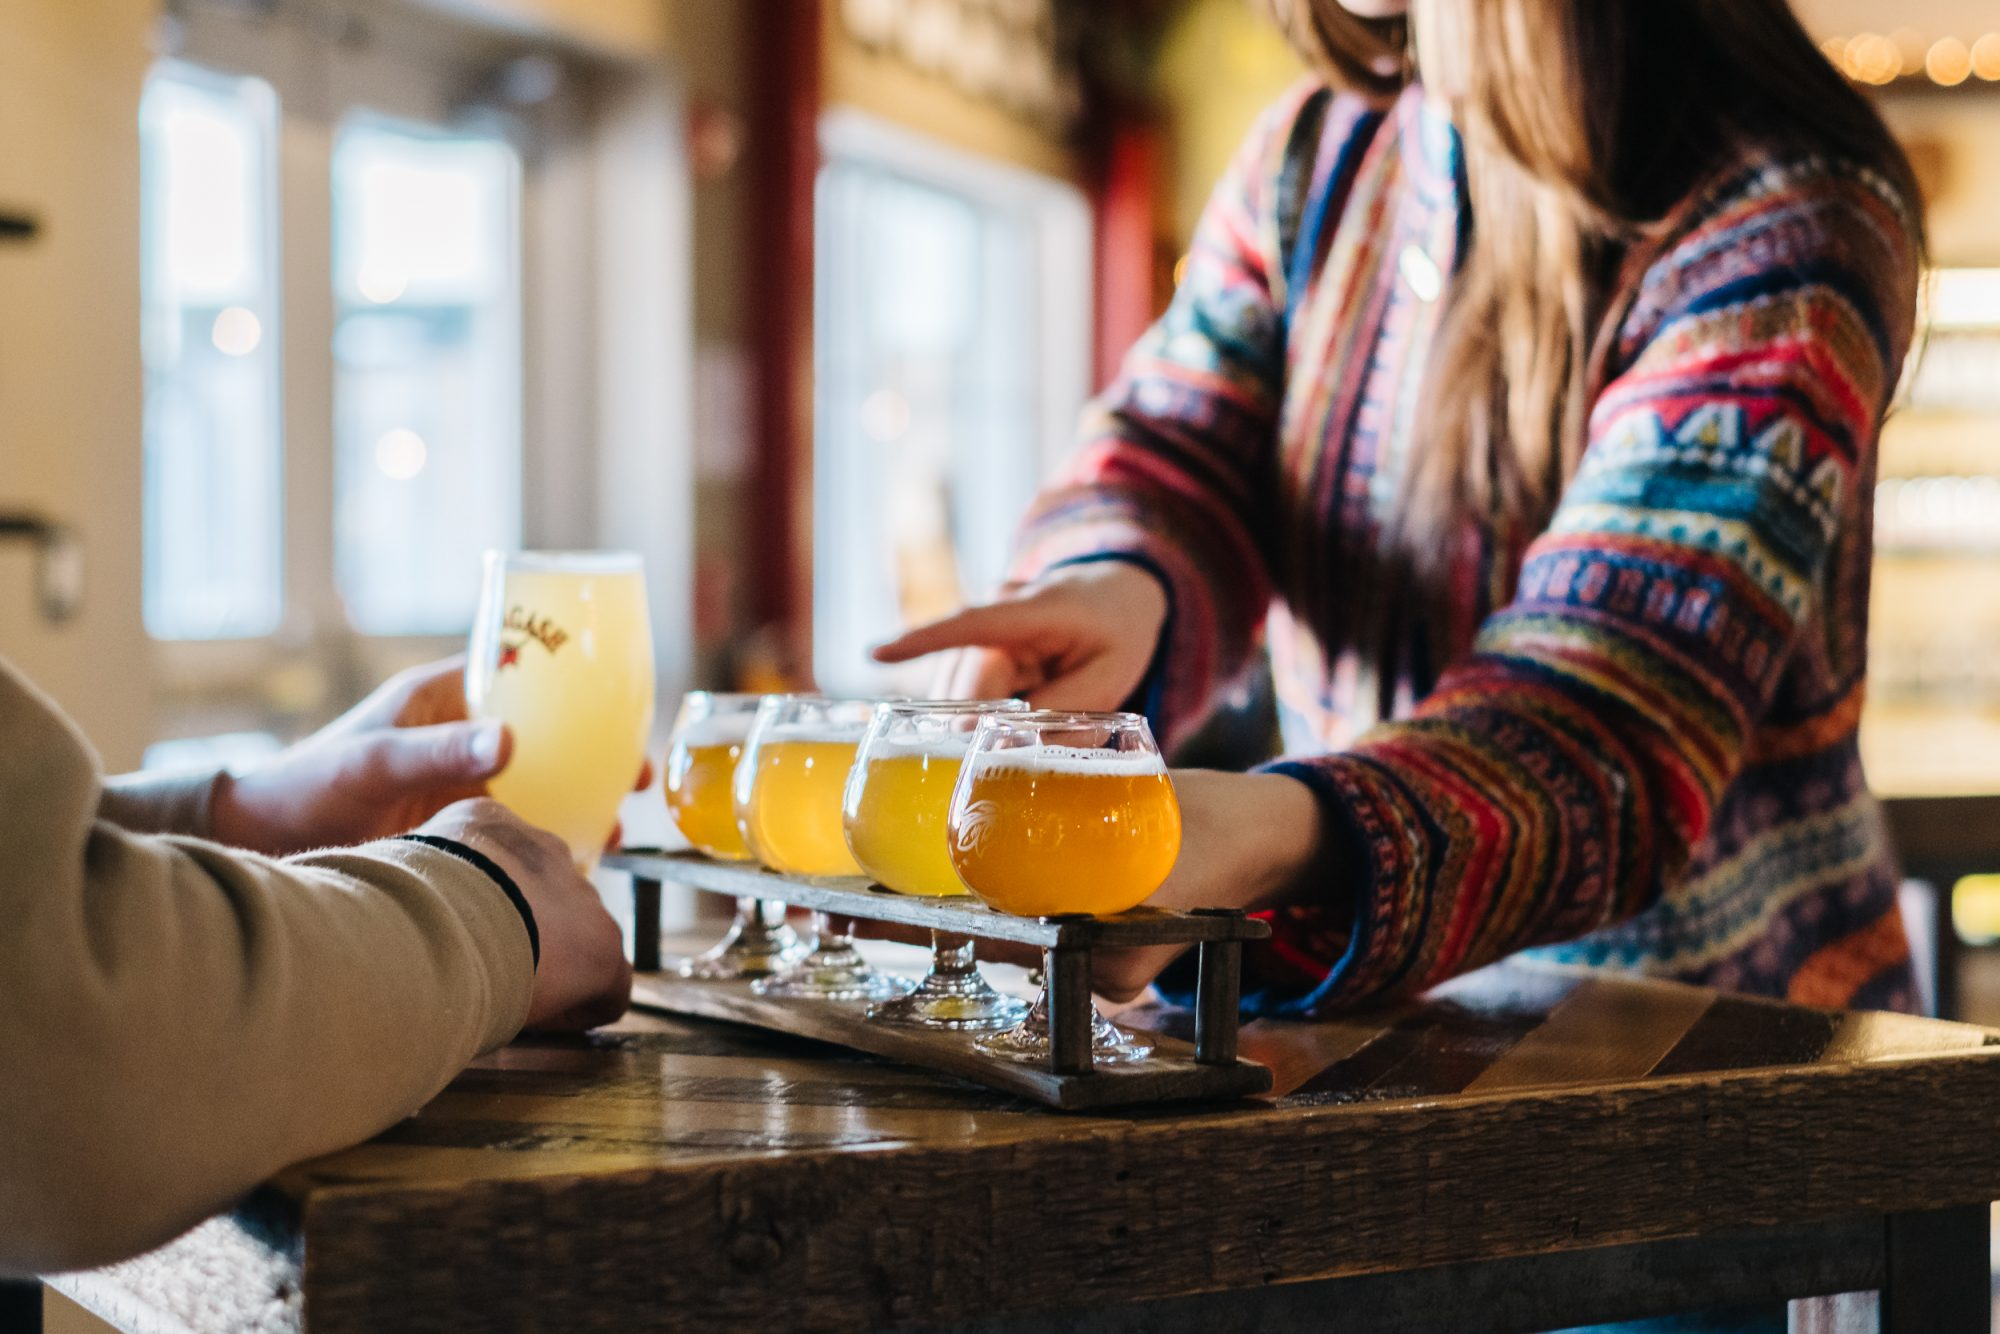 The 10 Best Breweries in the U.S. to Visit, According to Yelp Reviewers